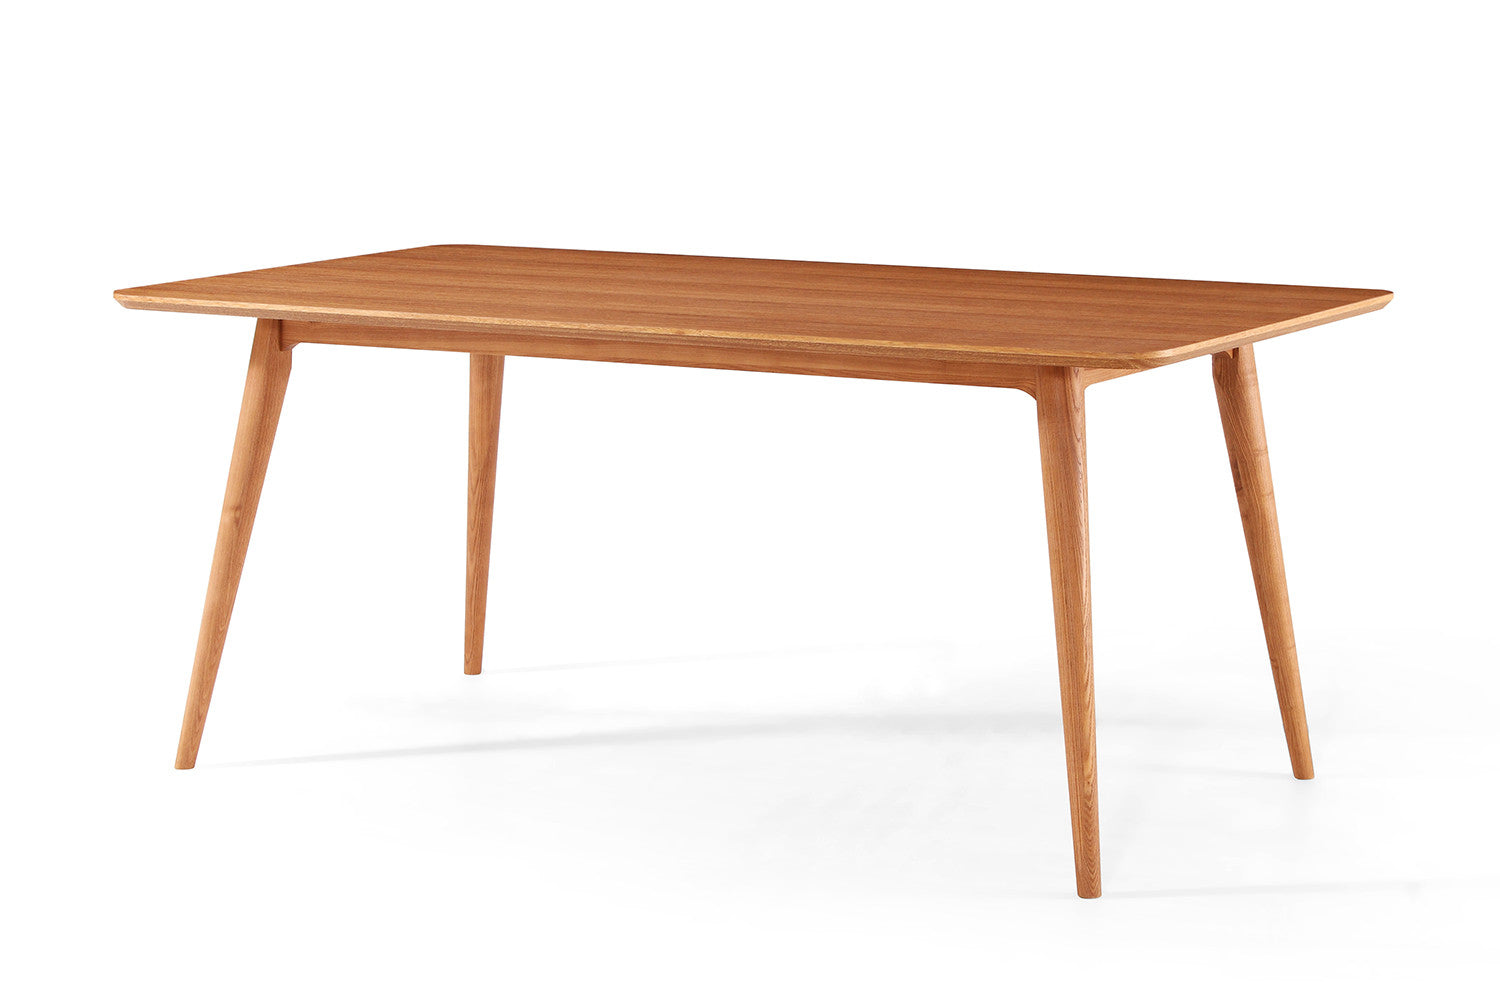 Table de salle manger design en bois julia dewarens for Table salle a manger weba